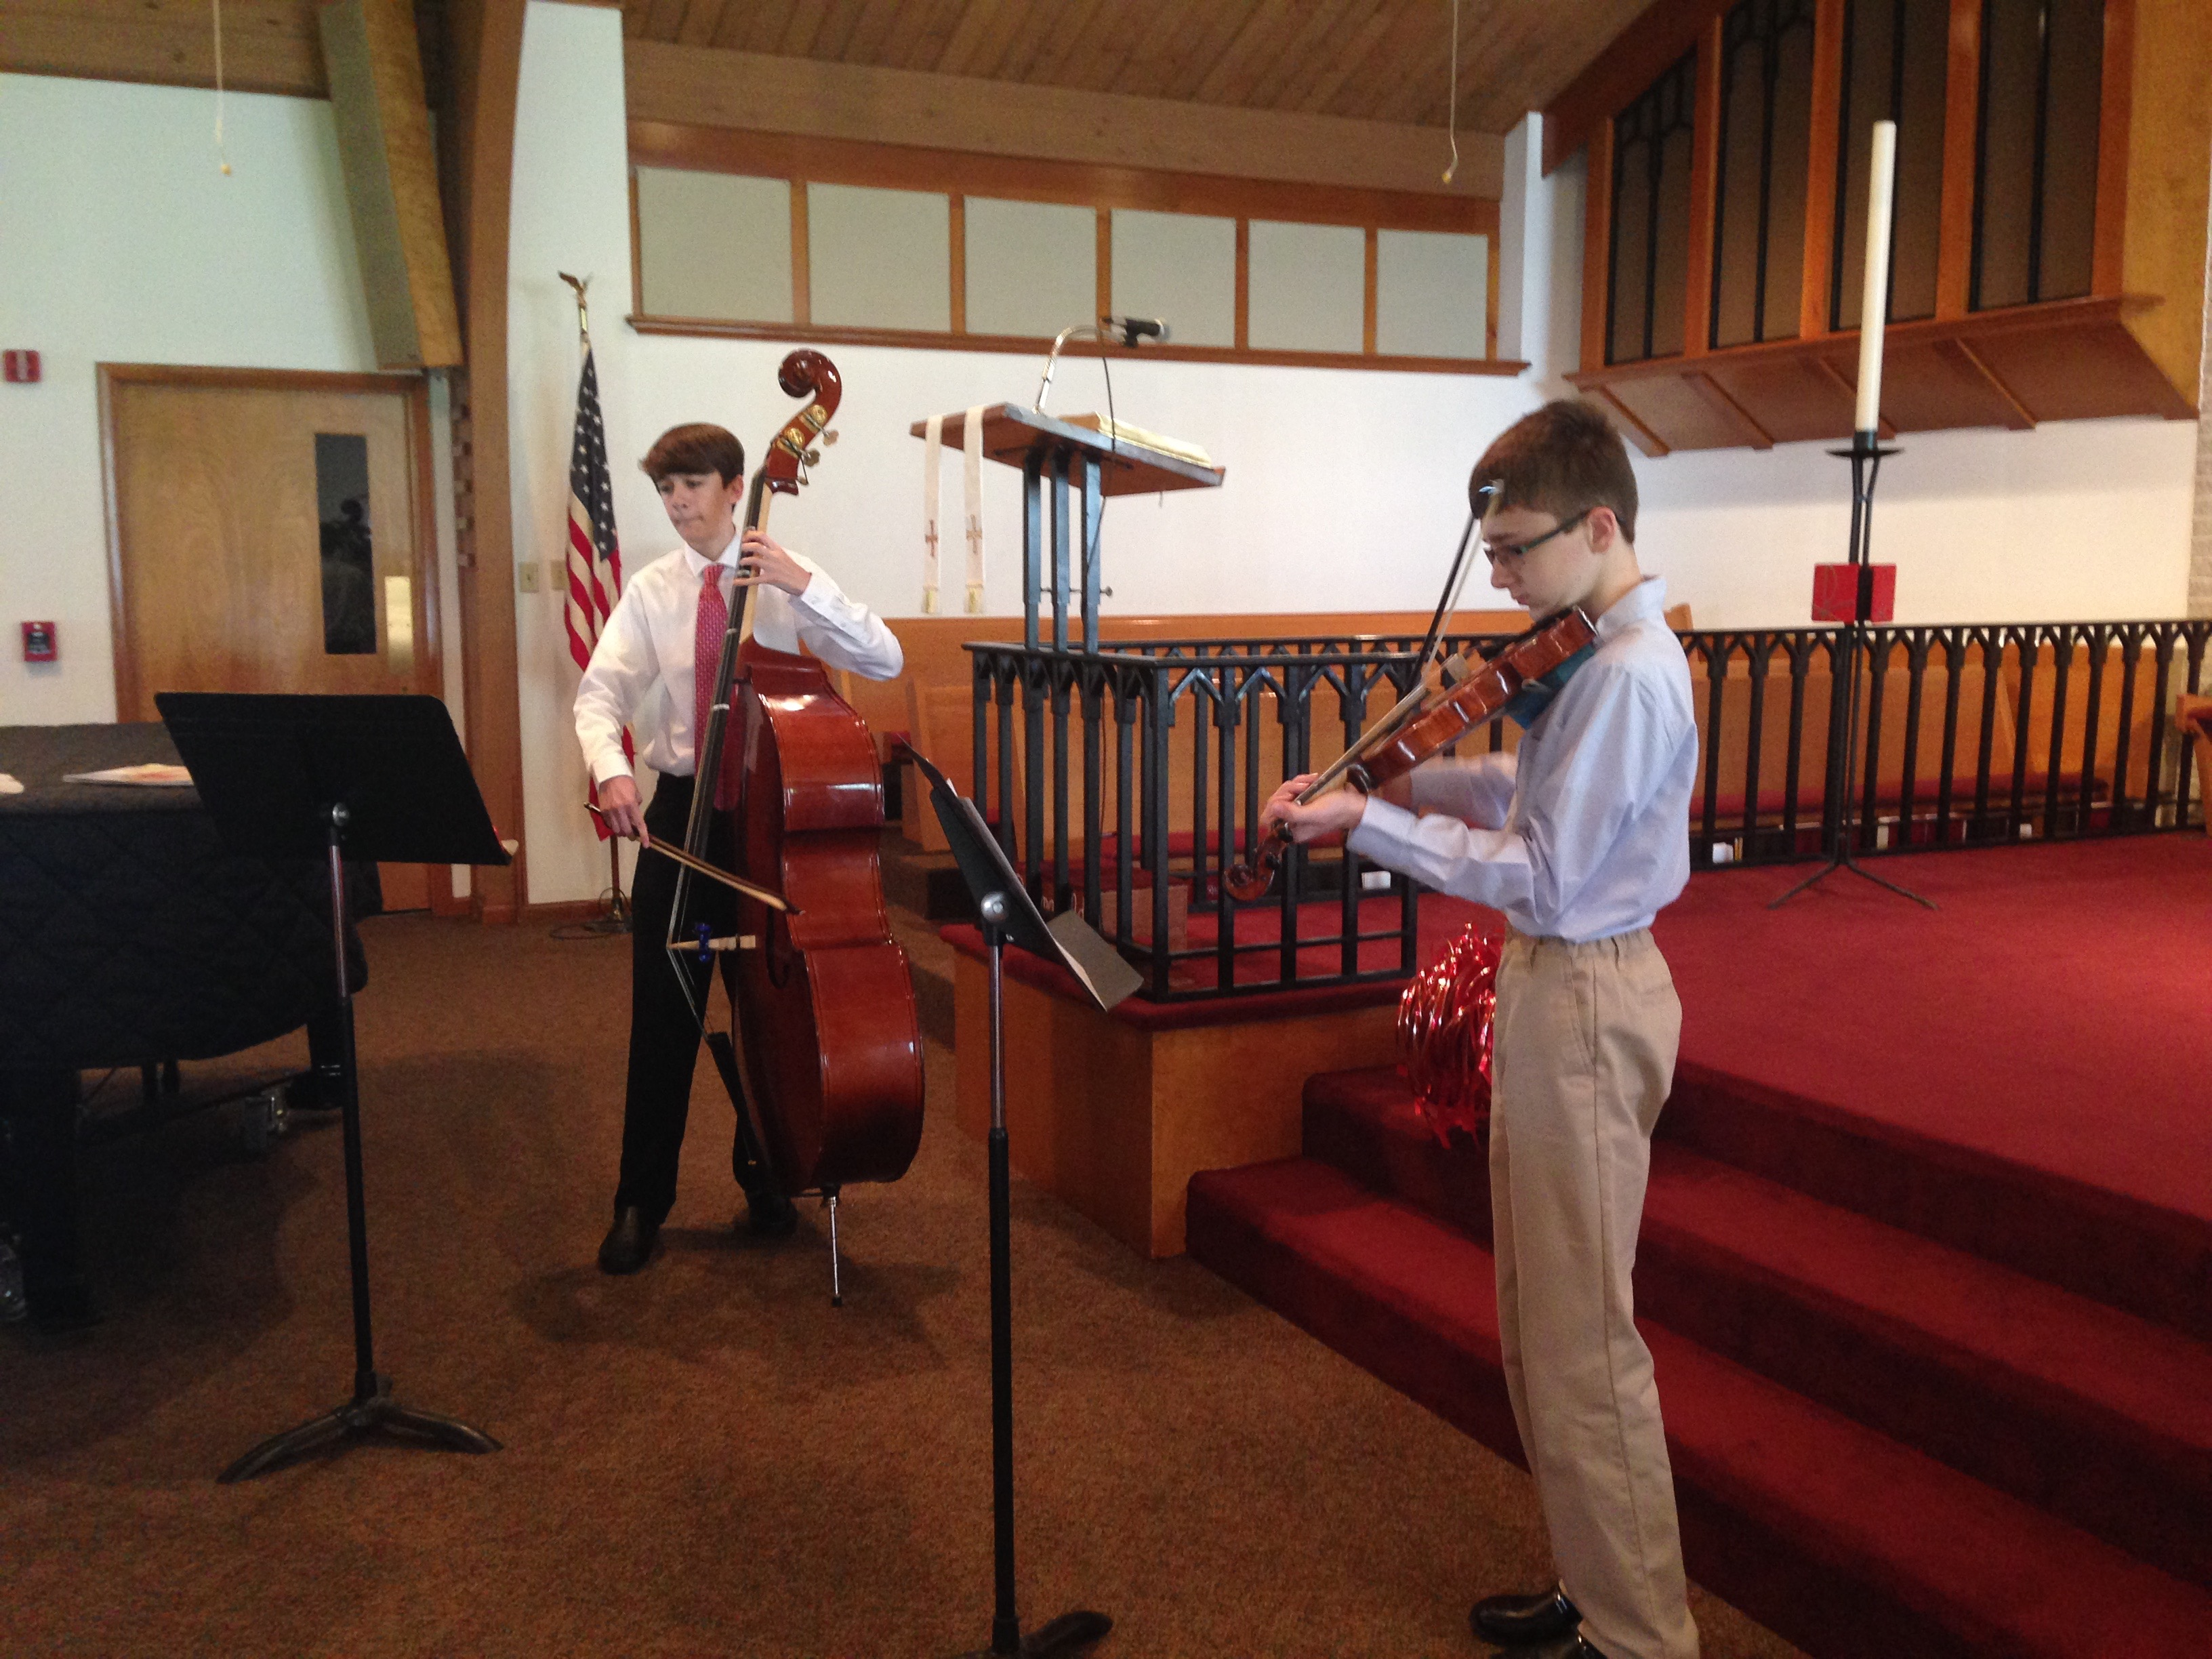 Confirmation musical performance